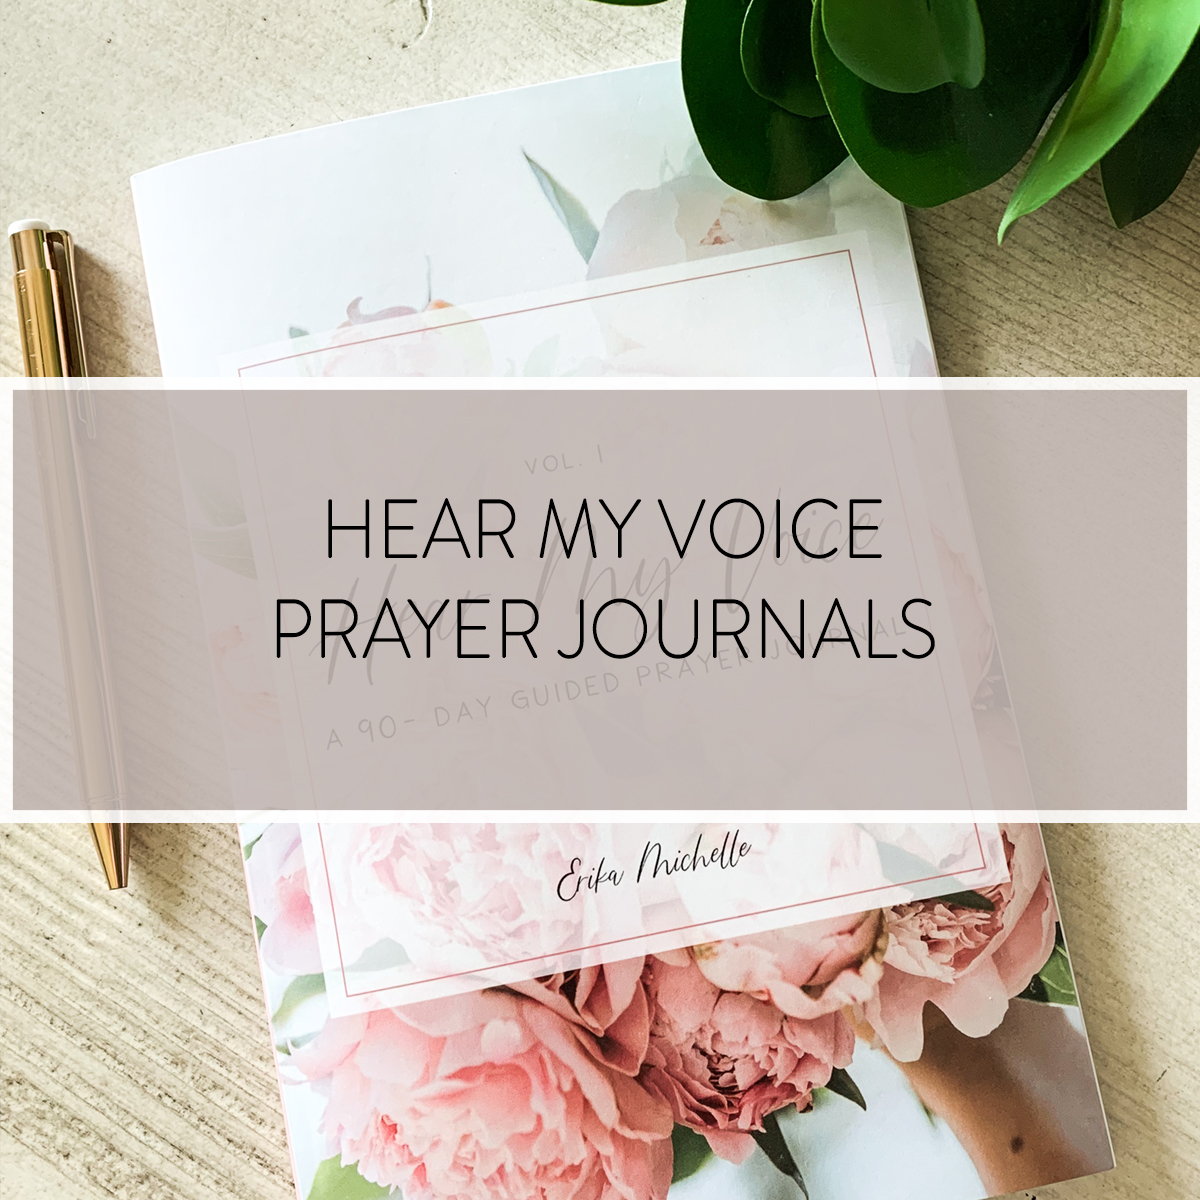 The NEW Hear My Voice prayer journals guide you through 90 days of prayer. Each day gives you a prompt to get started and space to write how and when God answered your prayer.